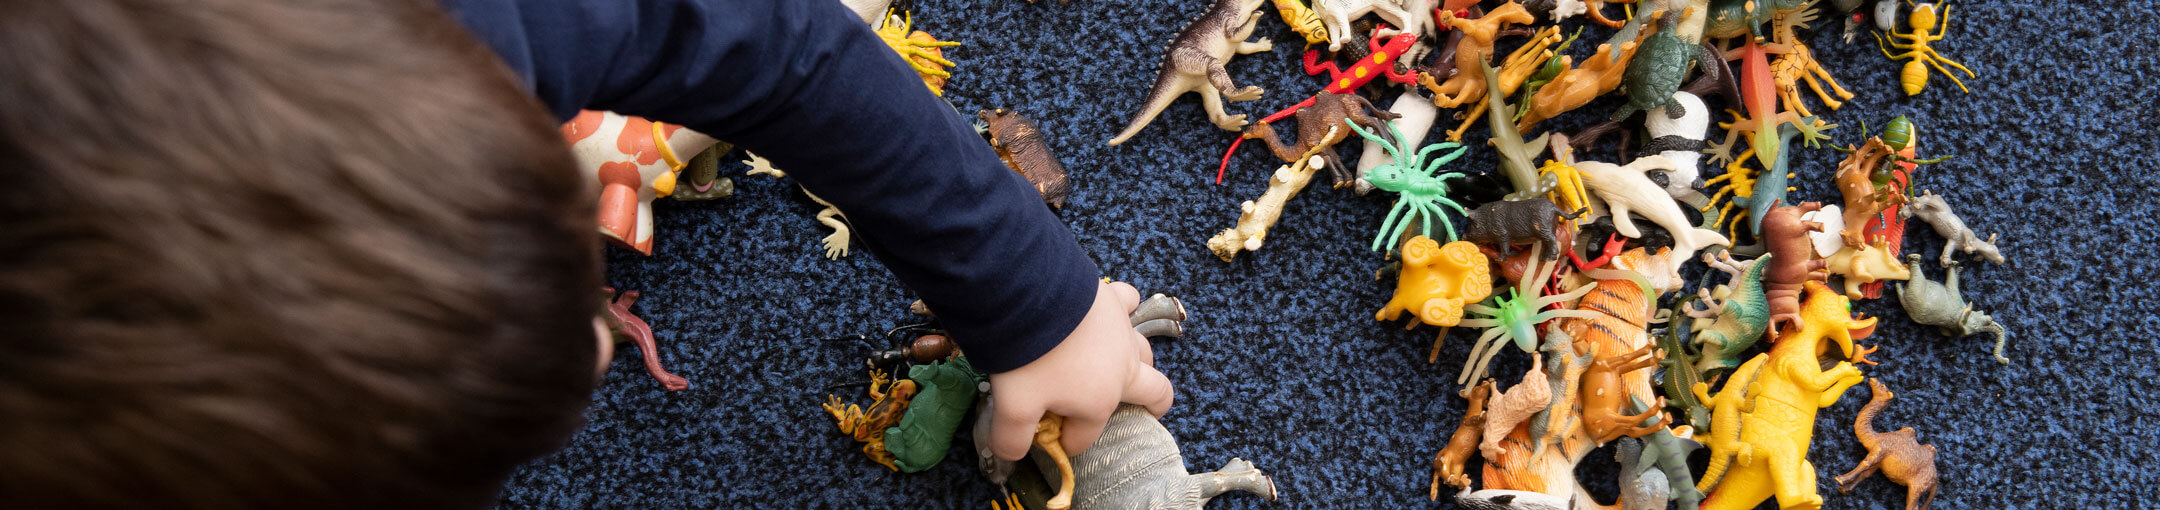 A toddler playing with a dinosaur toys on the floor.